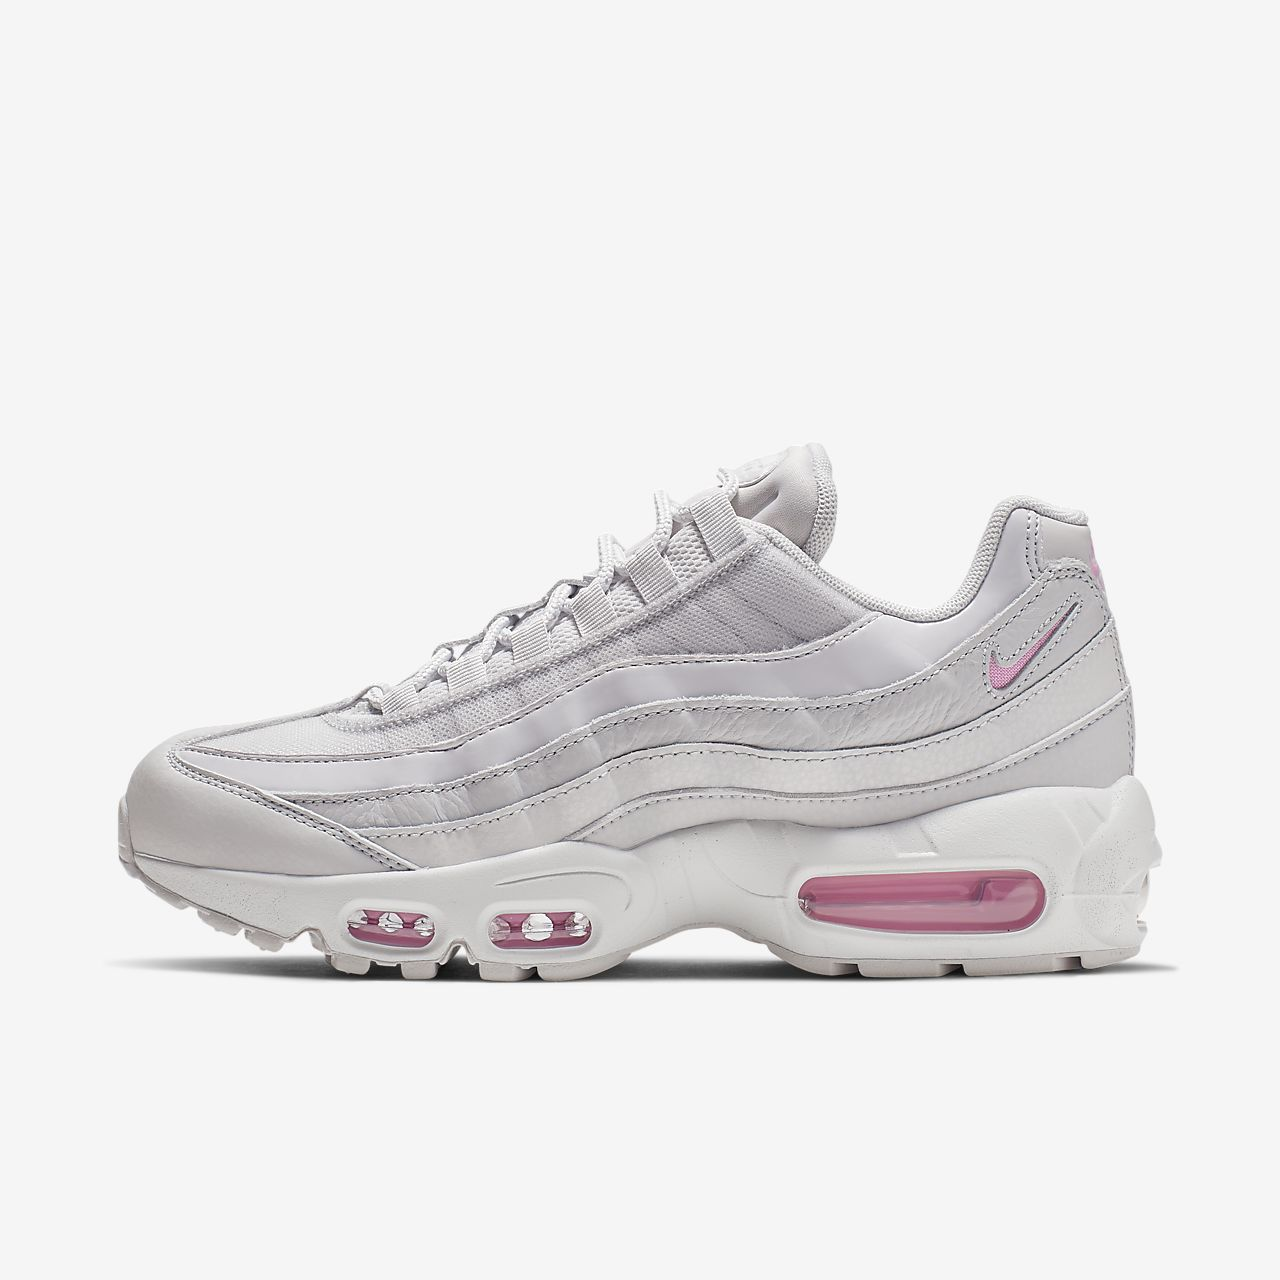 new style d0803 f3305 ... Nike Air Max 95 SE Women s Shoe